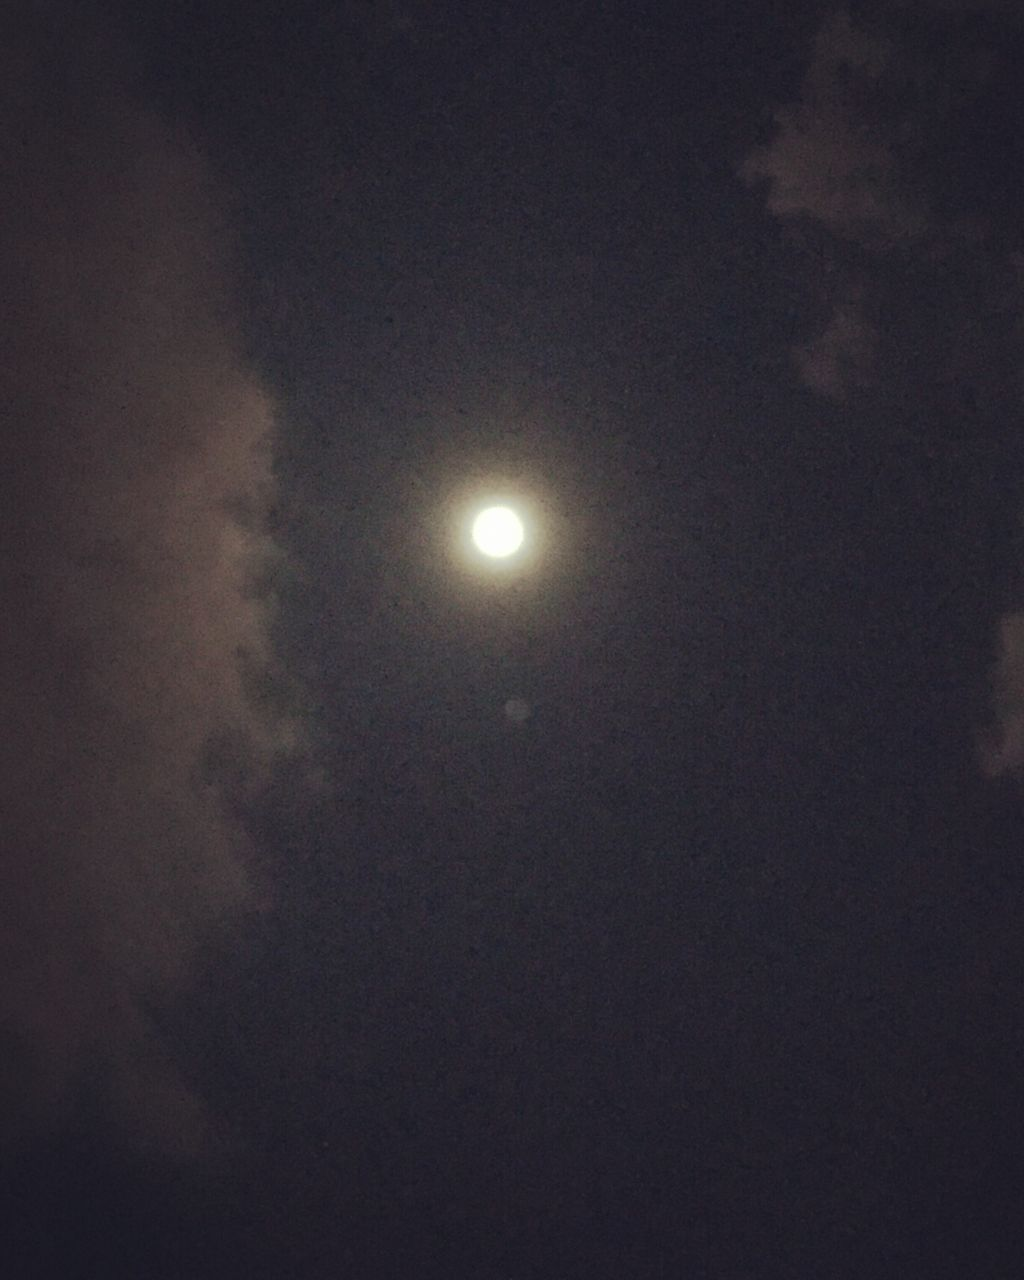 moon, night, astronomy, nature, beauty in nature, solar eclipse, low angle view, scenics, outdoors, sky, no people, natural phenomenon, crescent, moonlight, half moon, space